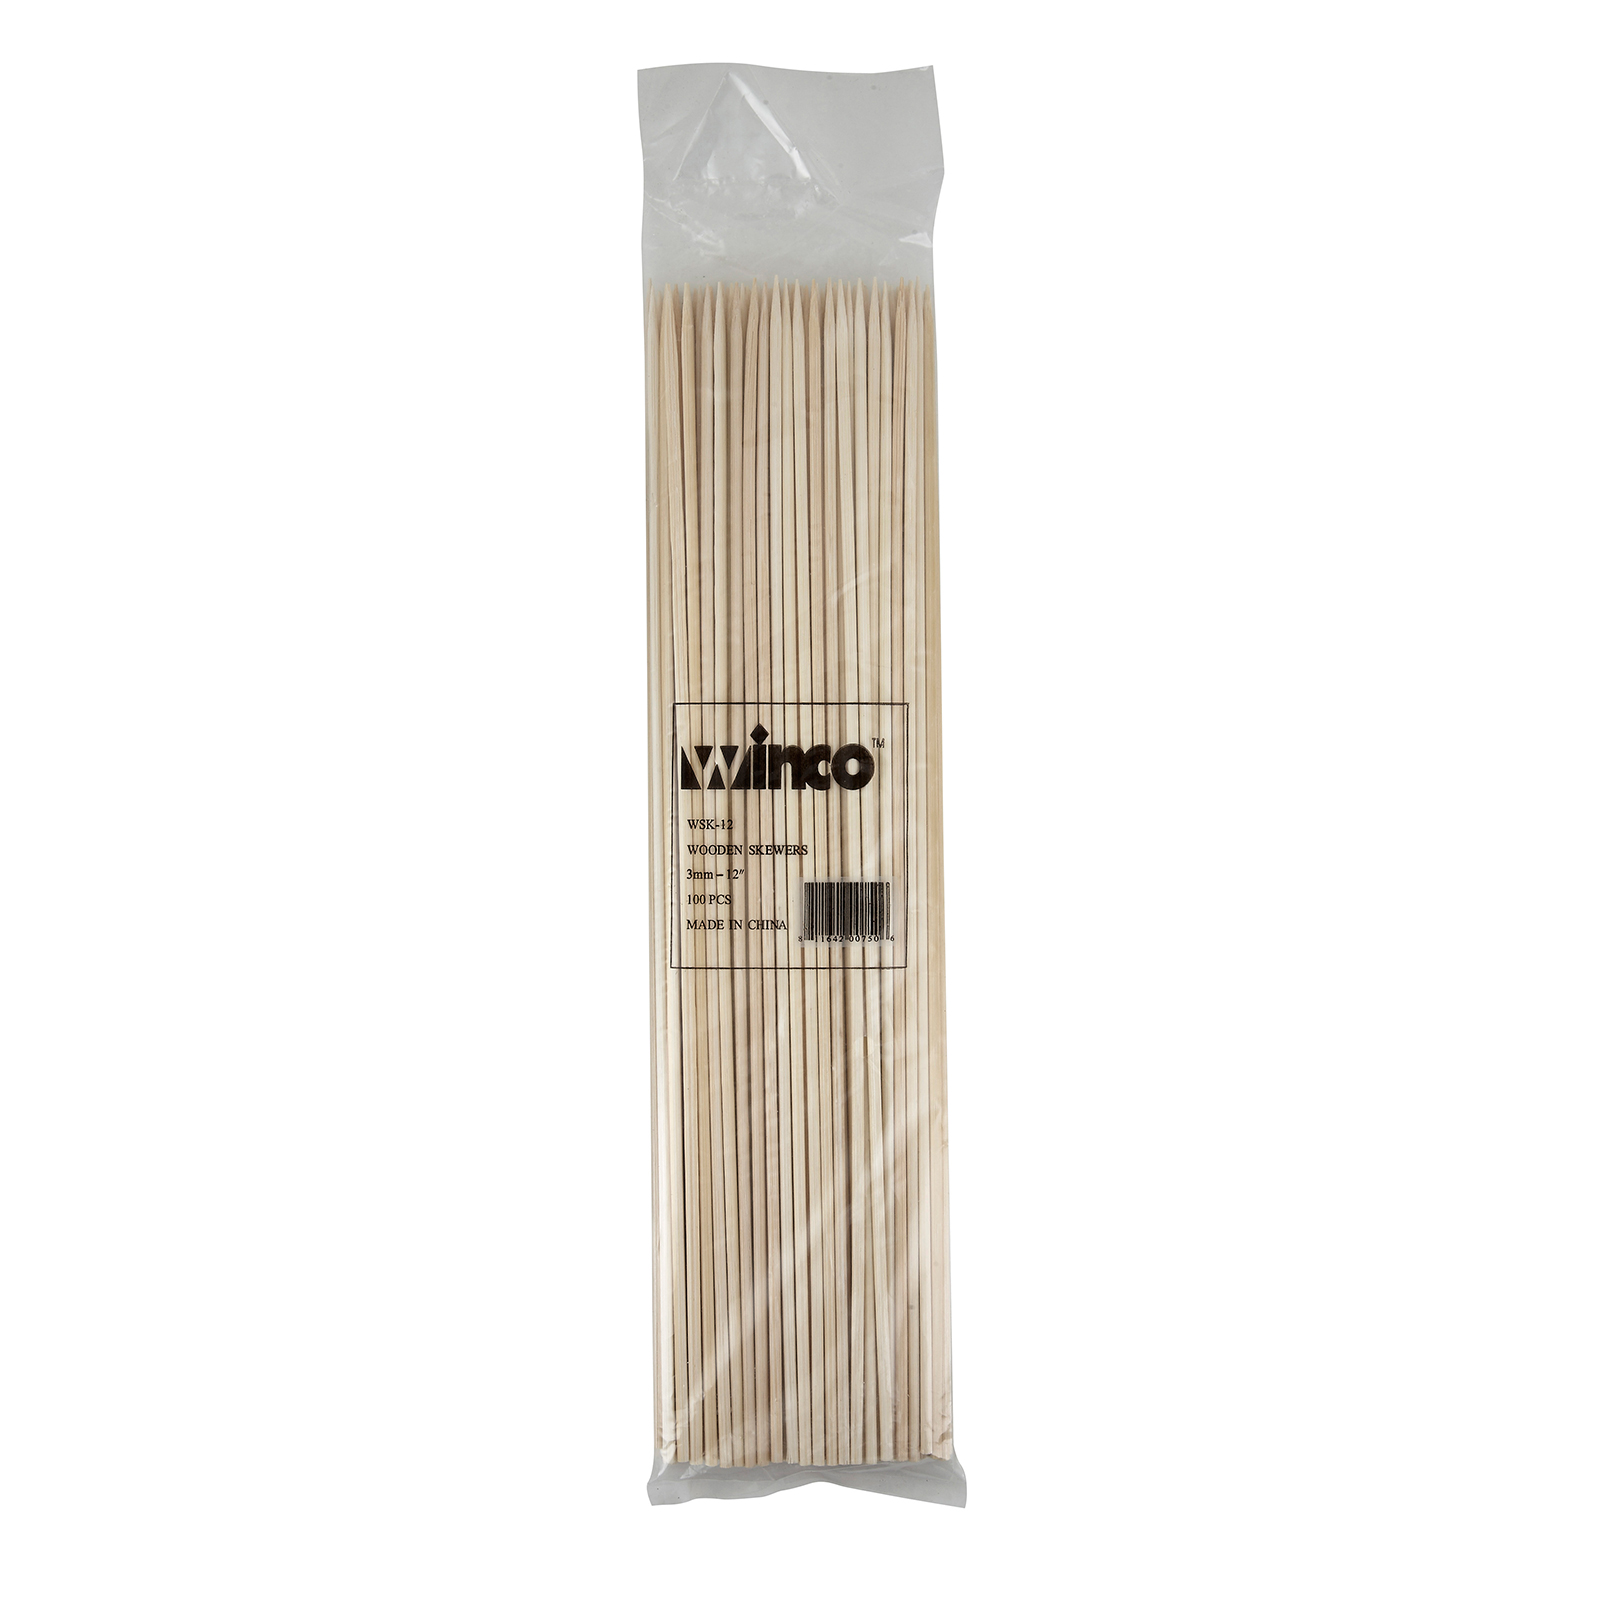 Winco WSK-12 skewers, wood